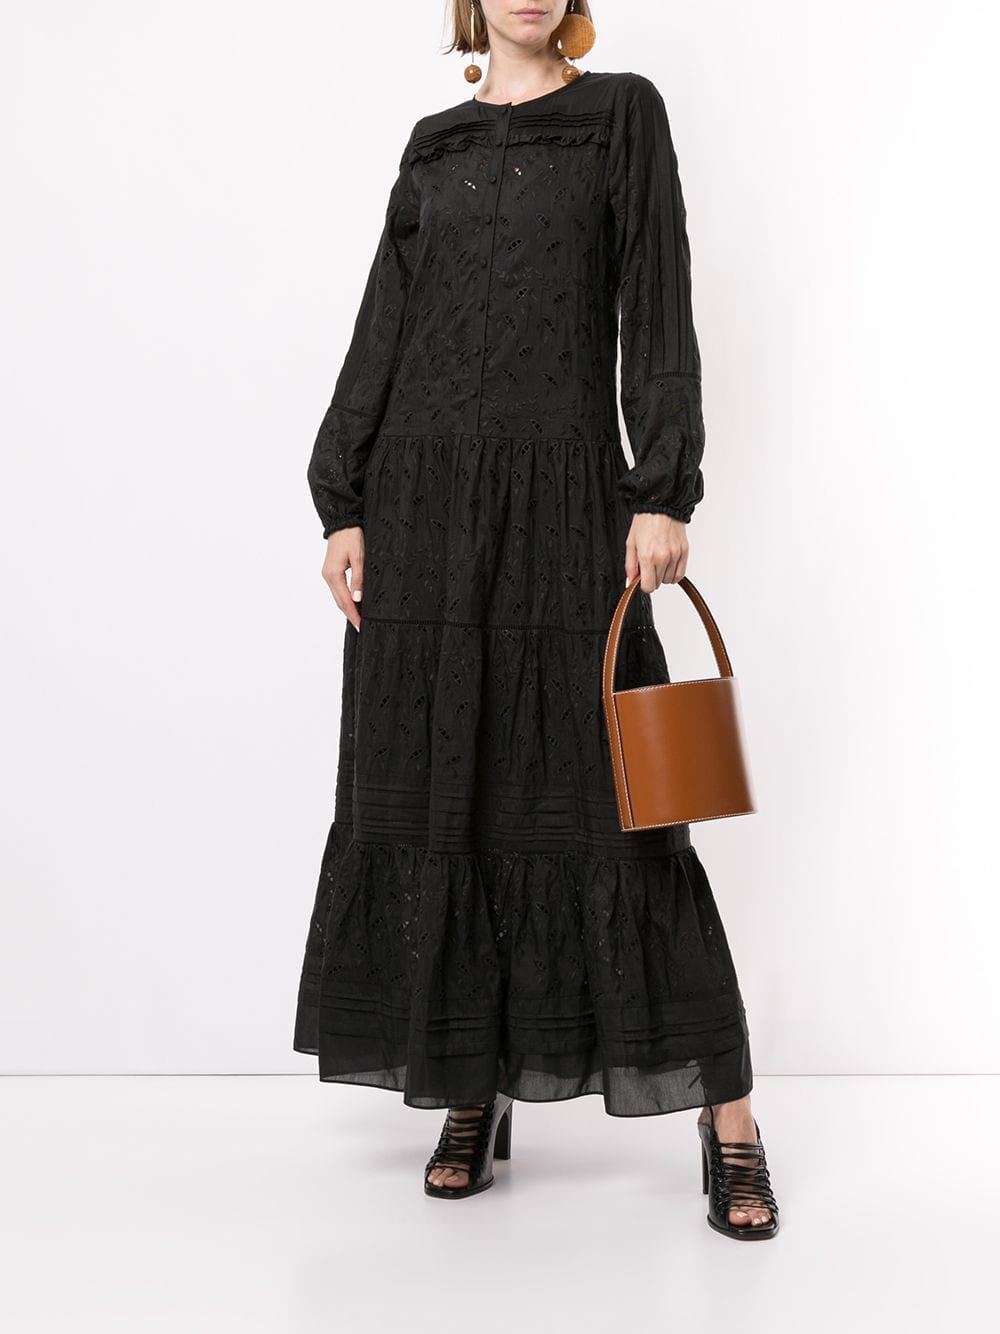 SIR. Elodie Long Sleeved Maxi Dress